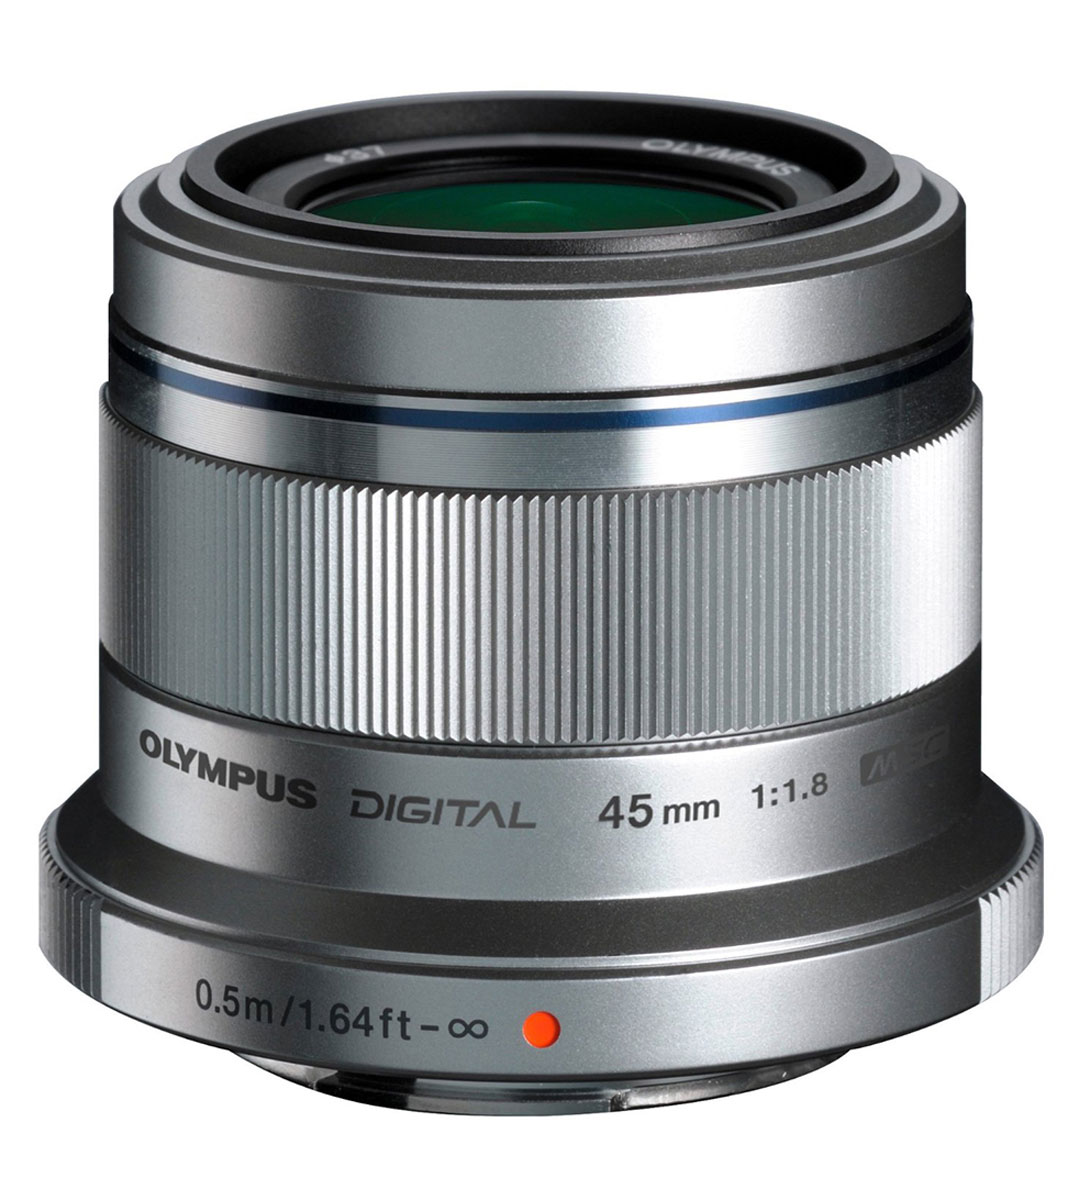 Olympus M.Zuiko Digital 45mm f/1.8, Silver объектив объектив olympus m zuiko ed 40 150 mm f 2 8 pro for micro four thirds